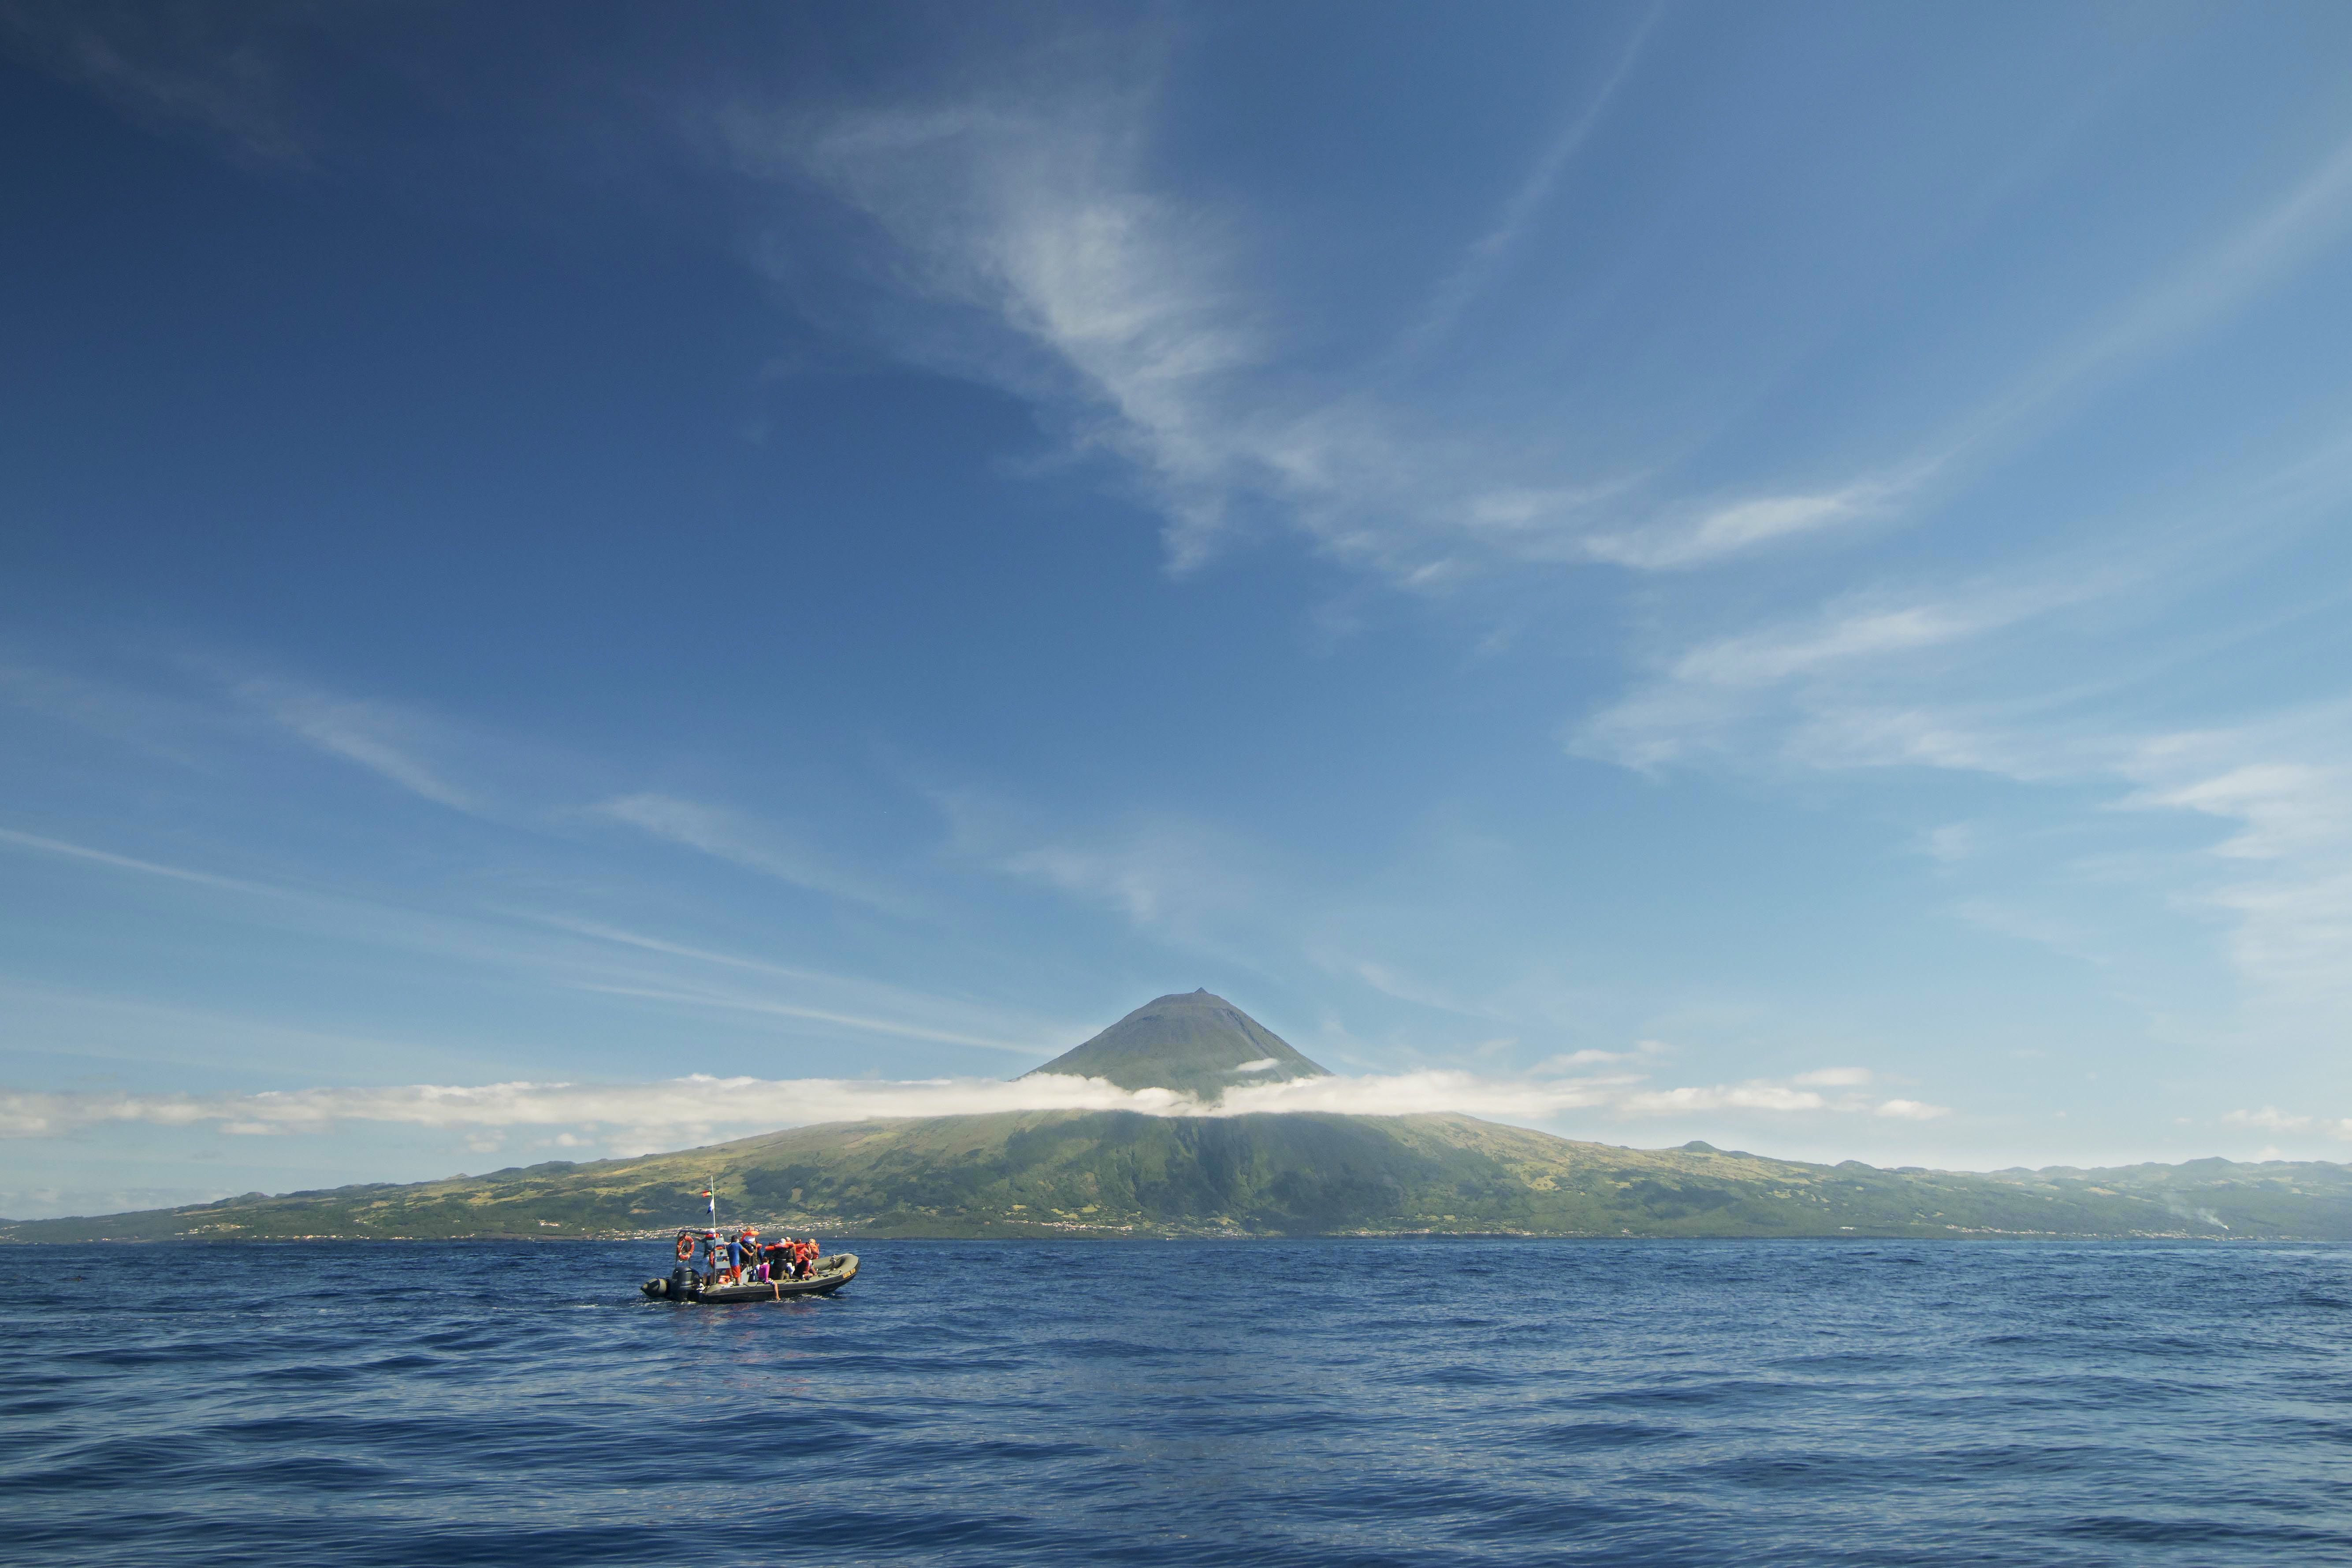 A raft of people approaching Pico Island